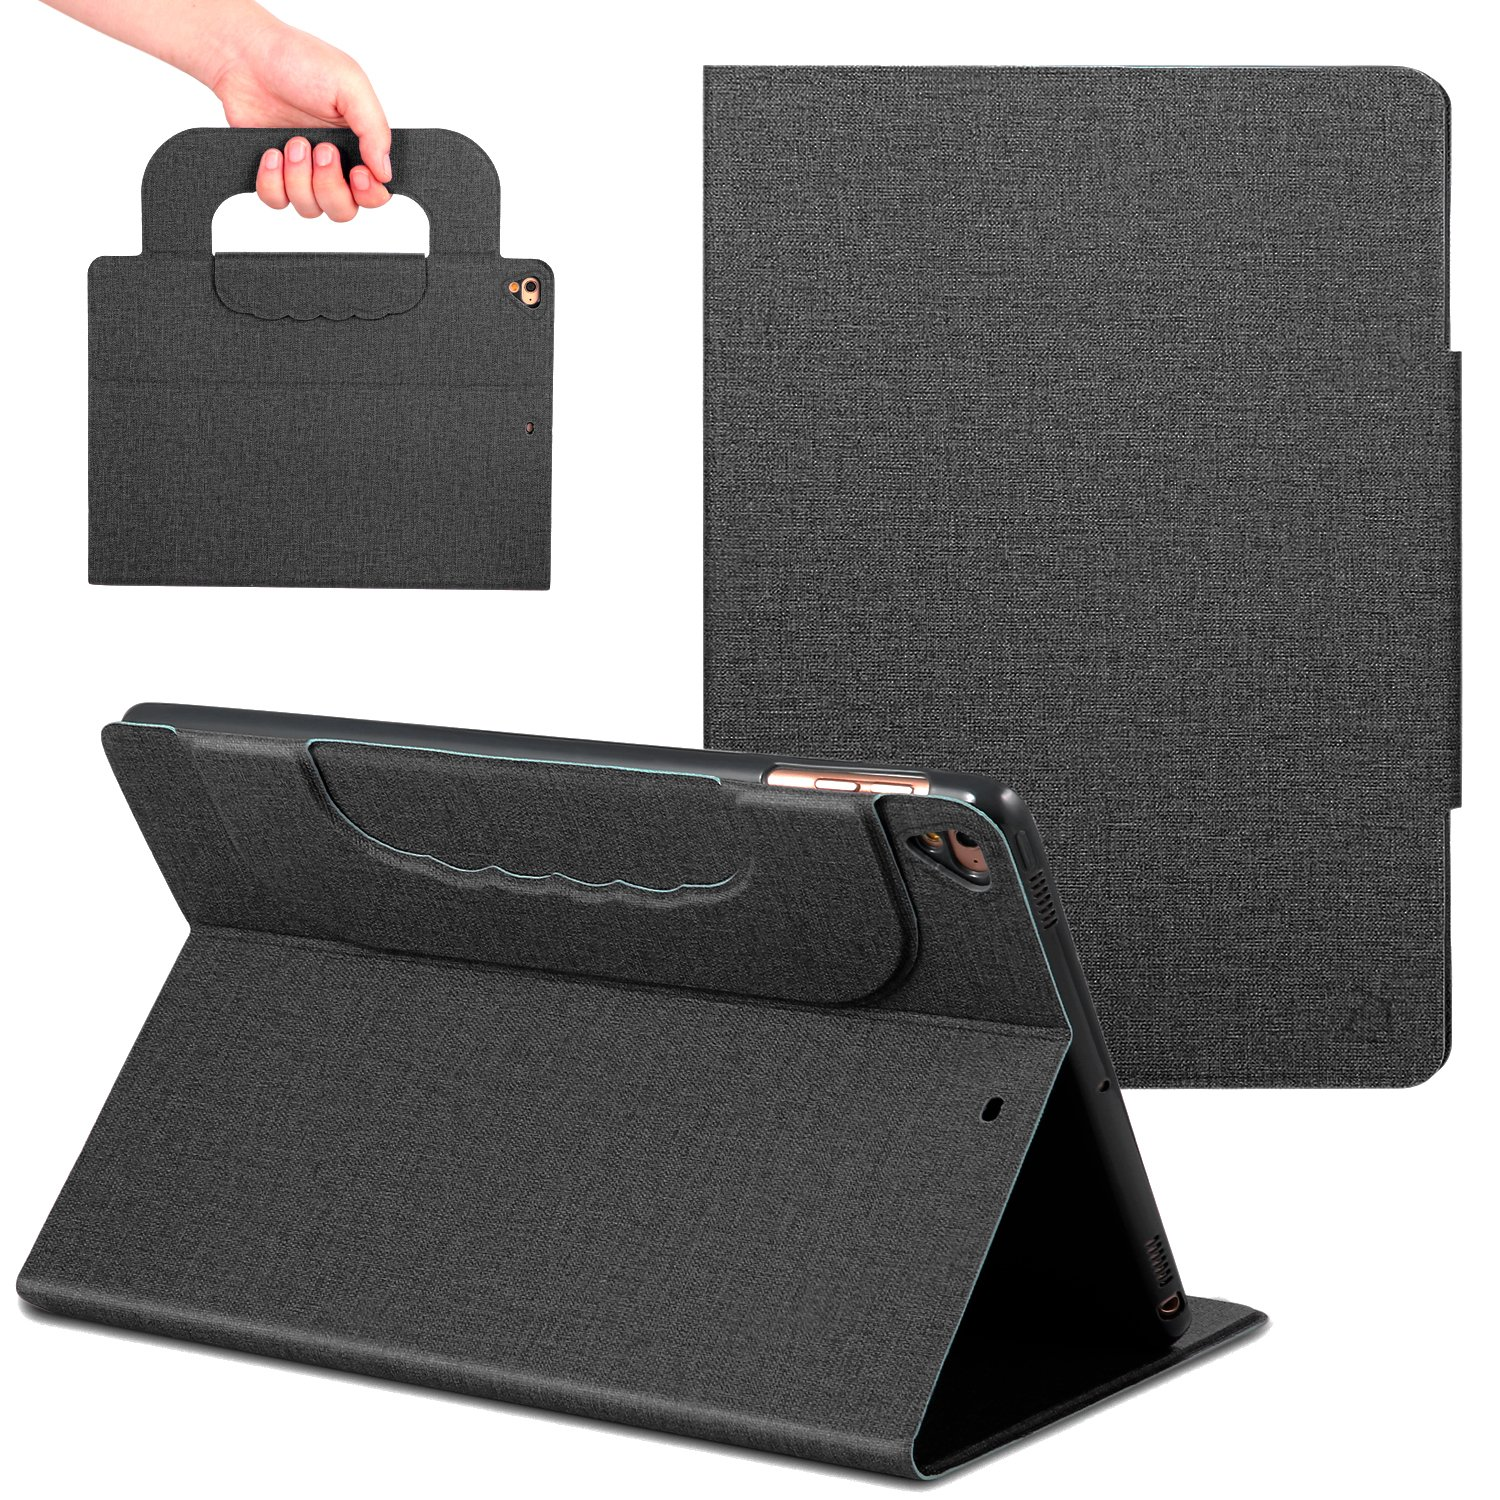 New iPad Case 9.7 inch with Handle,ANG PU Leather Business Case with Auto Wake/Sleep Function,Folio Stand Case with Cover for iPad 9.7 inch 2018/2017/iPad Pro 9.7/iPad Air 2/iPad Air(Black)